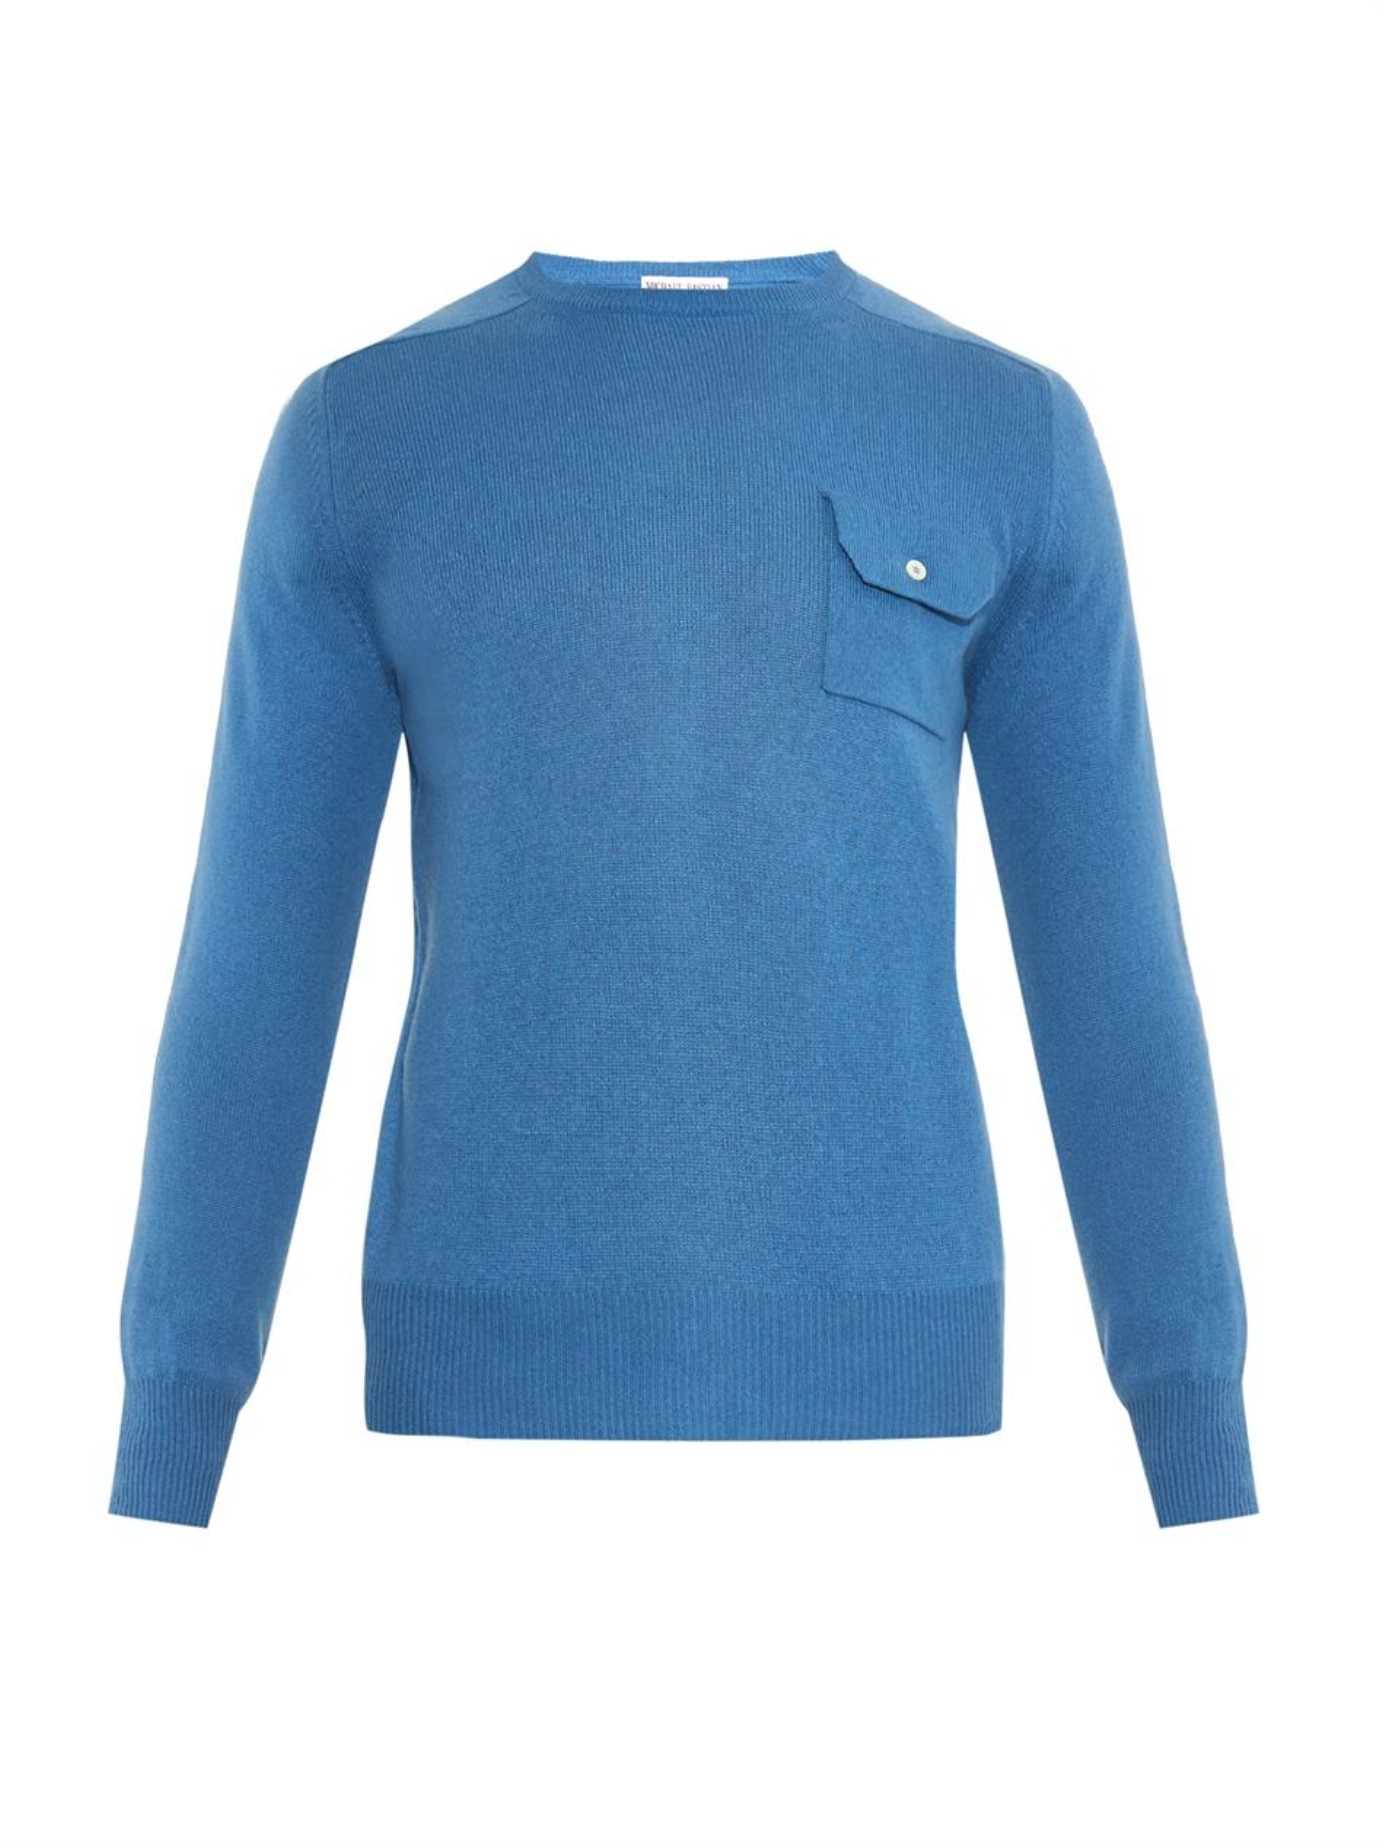 Michael bastian Chest-Pocket Cashmere Sweater in Blue for Men | Lyst